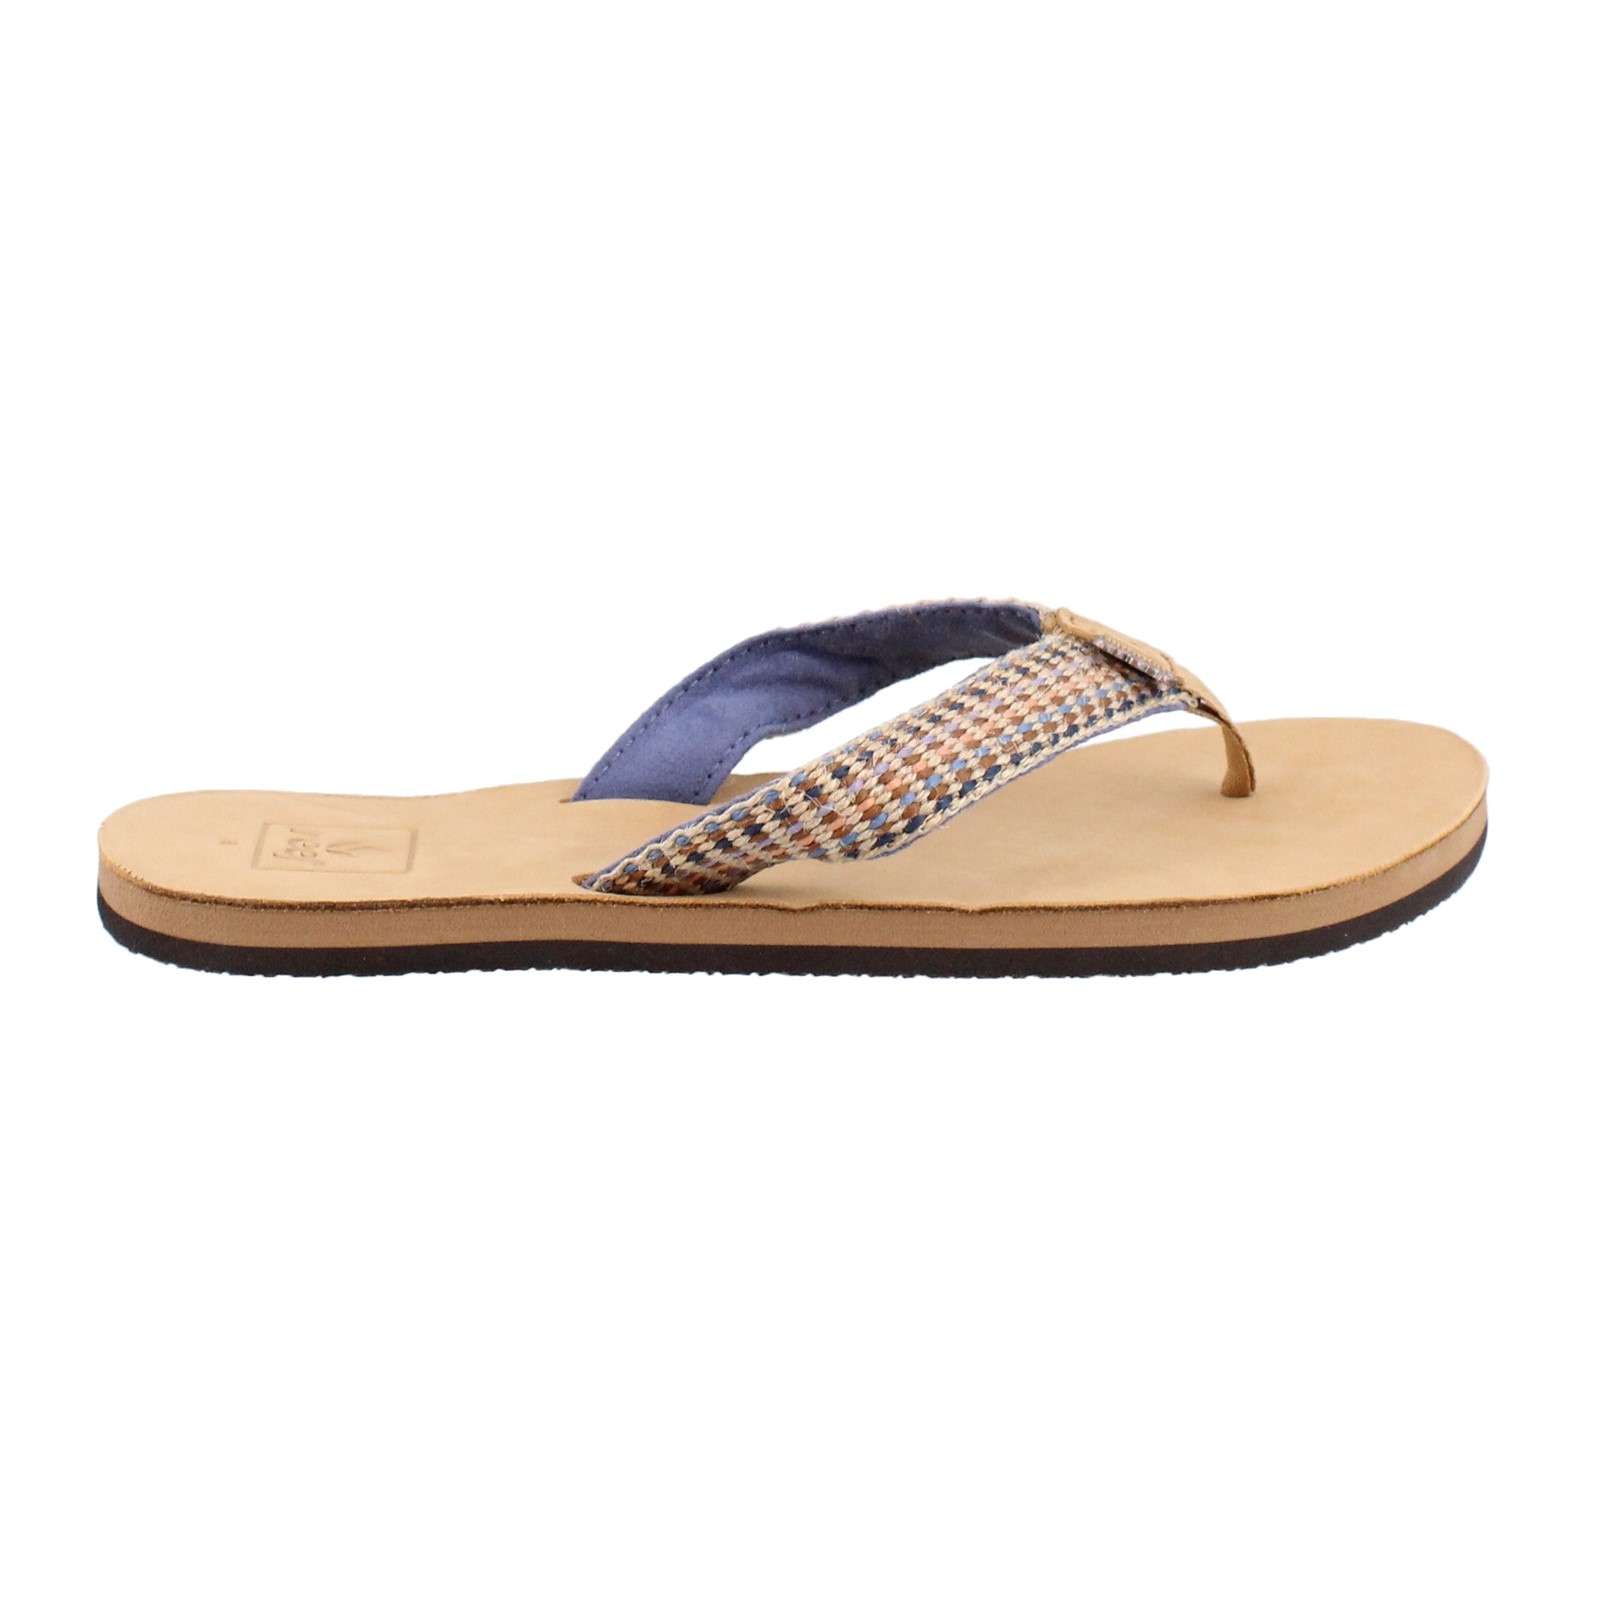 Women's Reef, Gypsylove Lux Thong Sandals